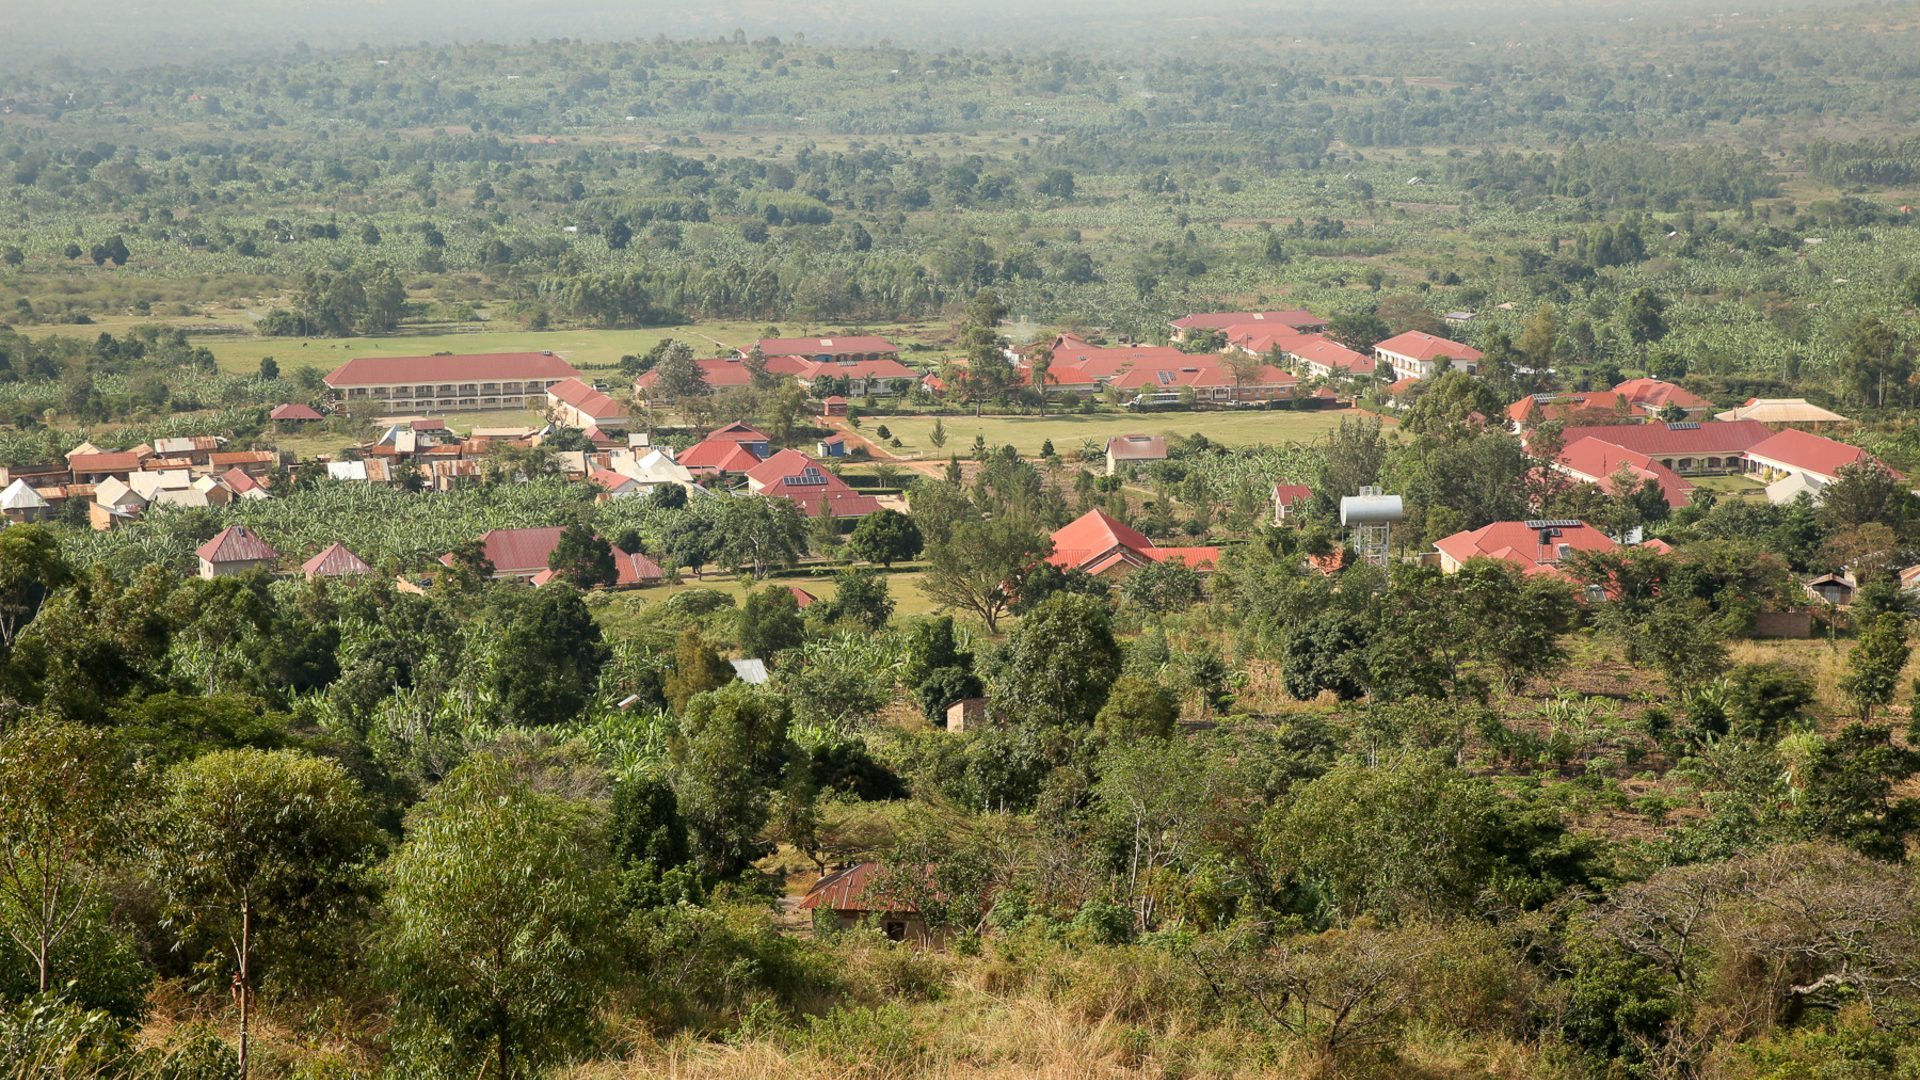 View of Mannya Village from the top of Mount Mannya